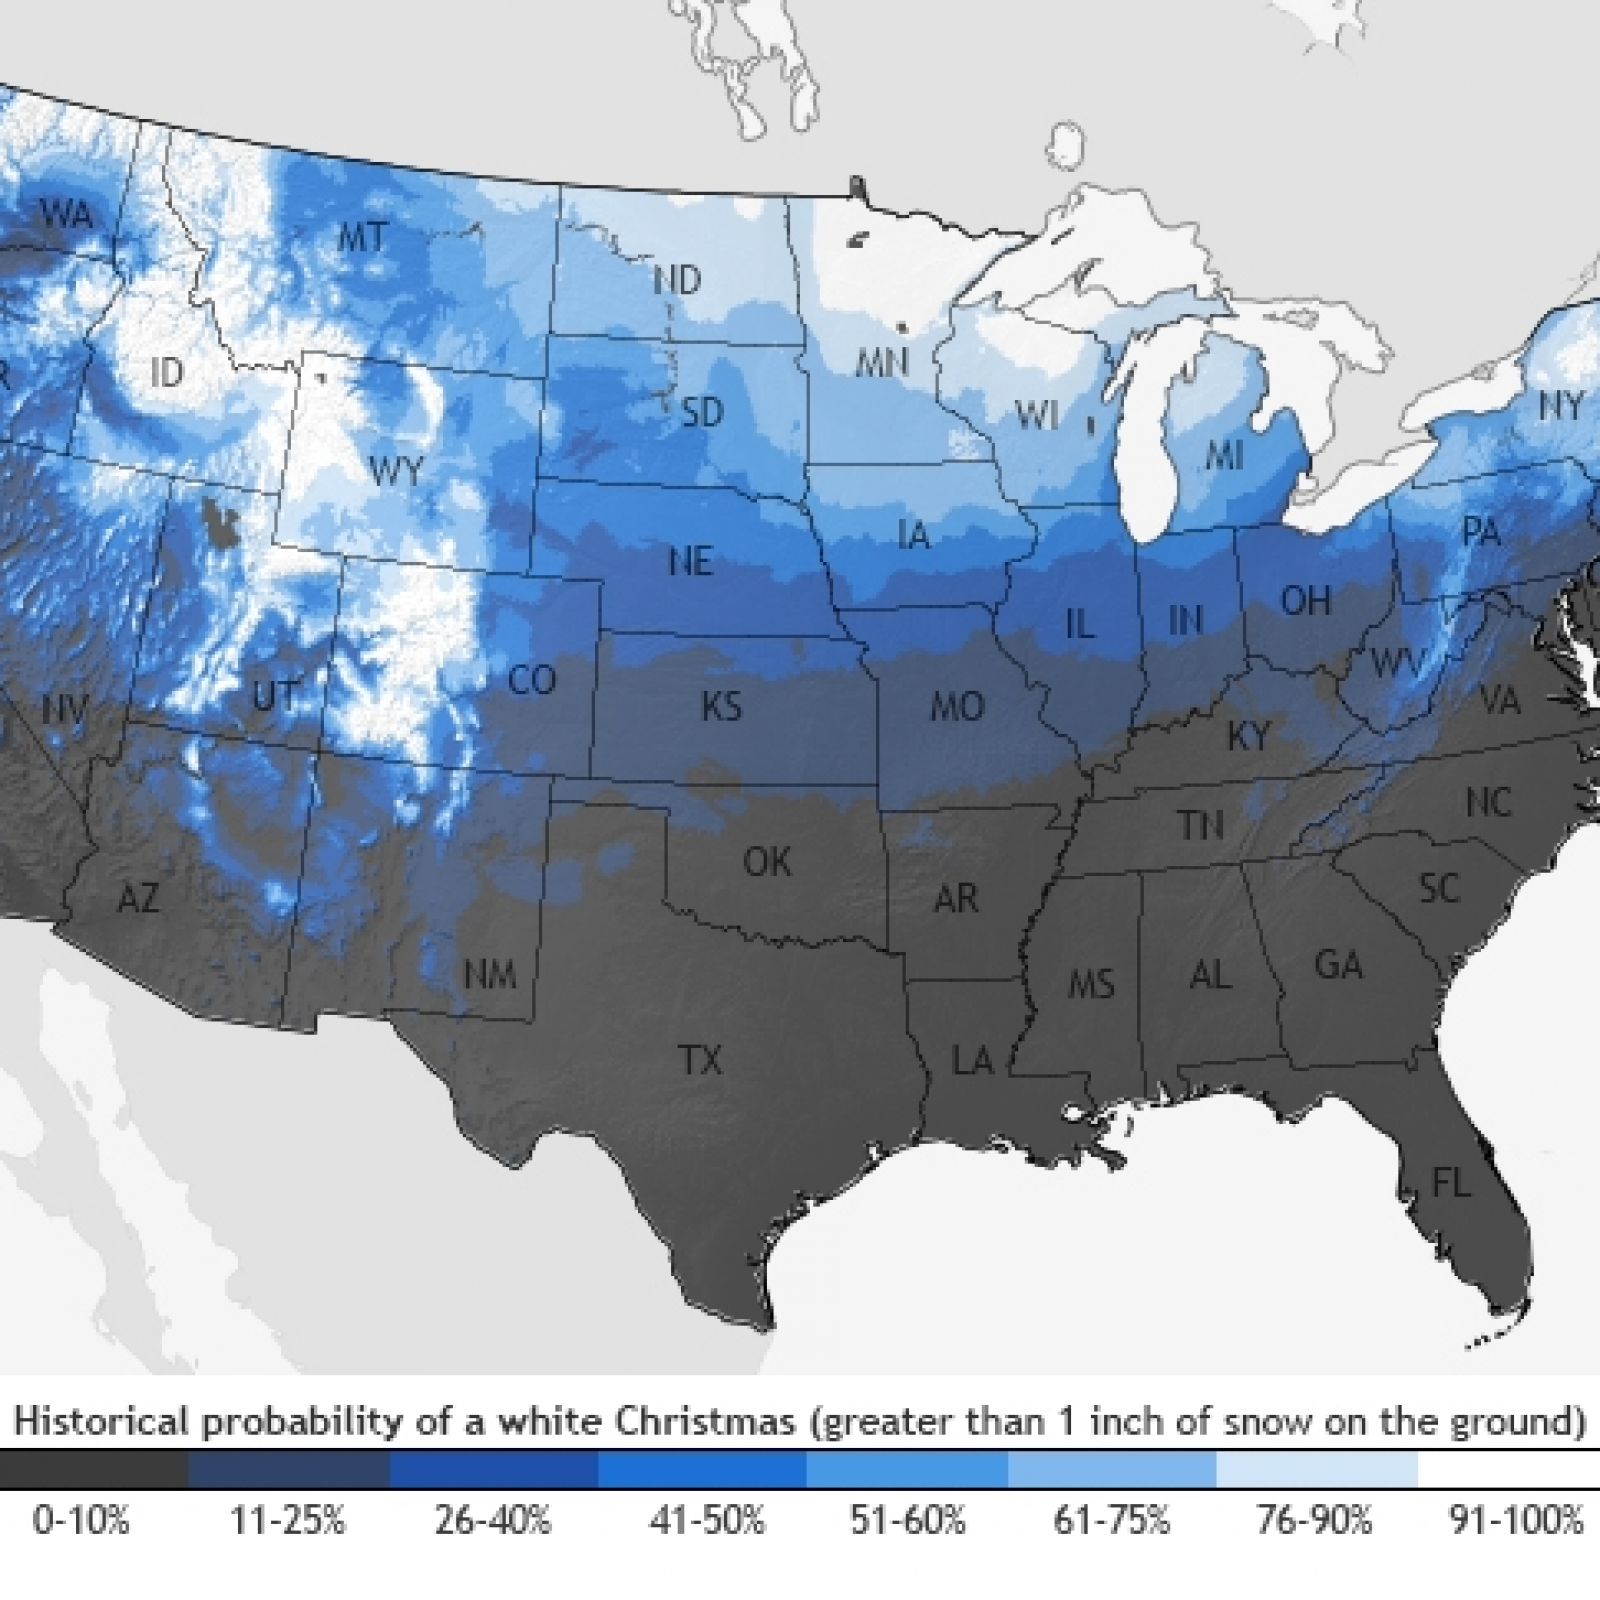 Weathrr For Christmas 2020 Pennsylvania Will It Snow on Christmas Day? Weather Forecast for December 25, 2019